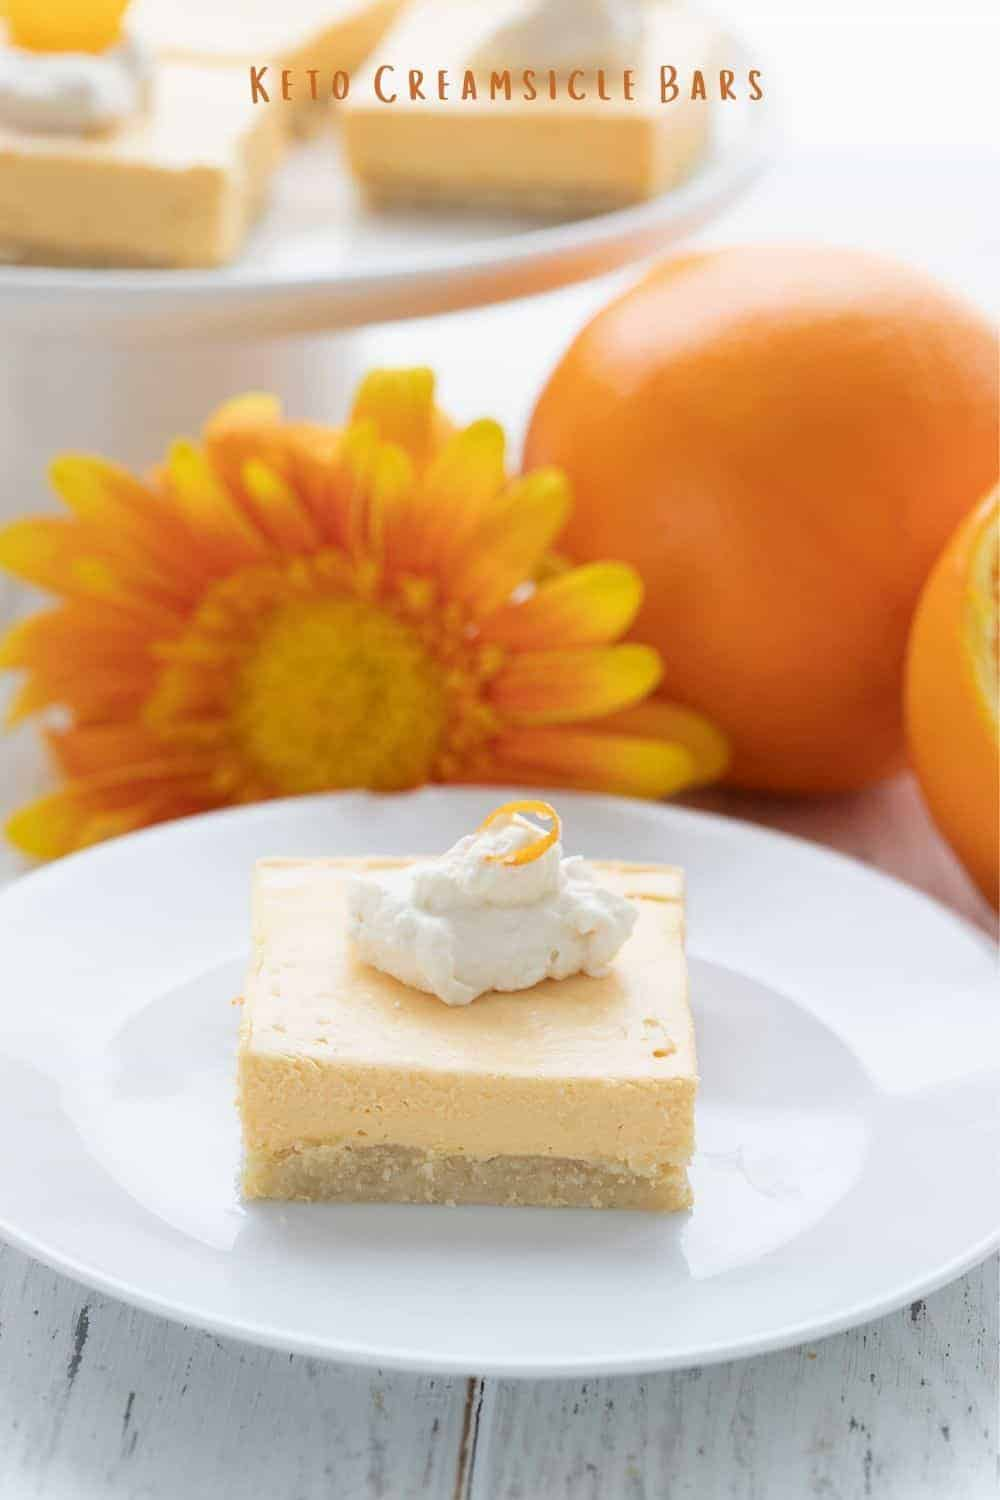 Titled image of a keto creamsicle on a white plate, in front of a cut up orange and some orange gerbera daisies